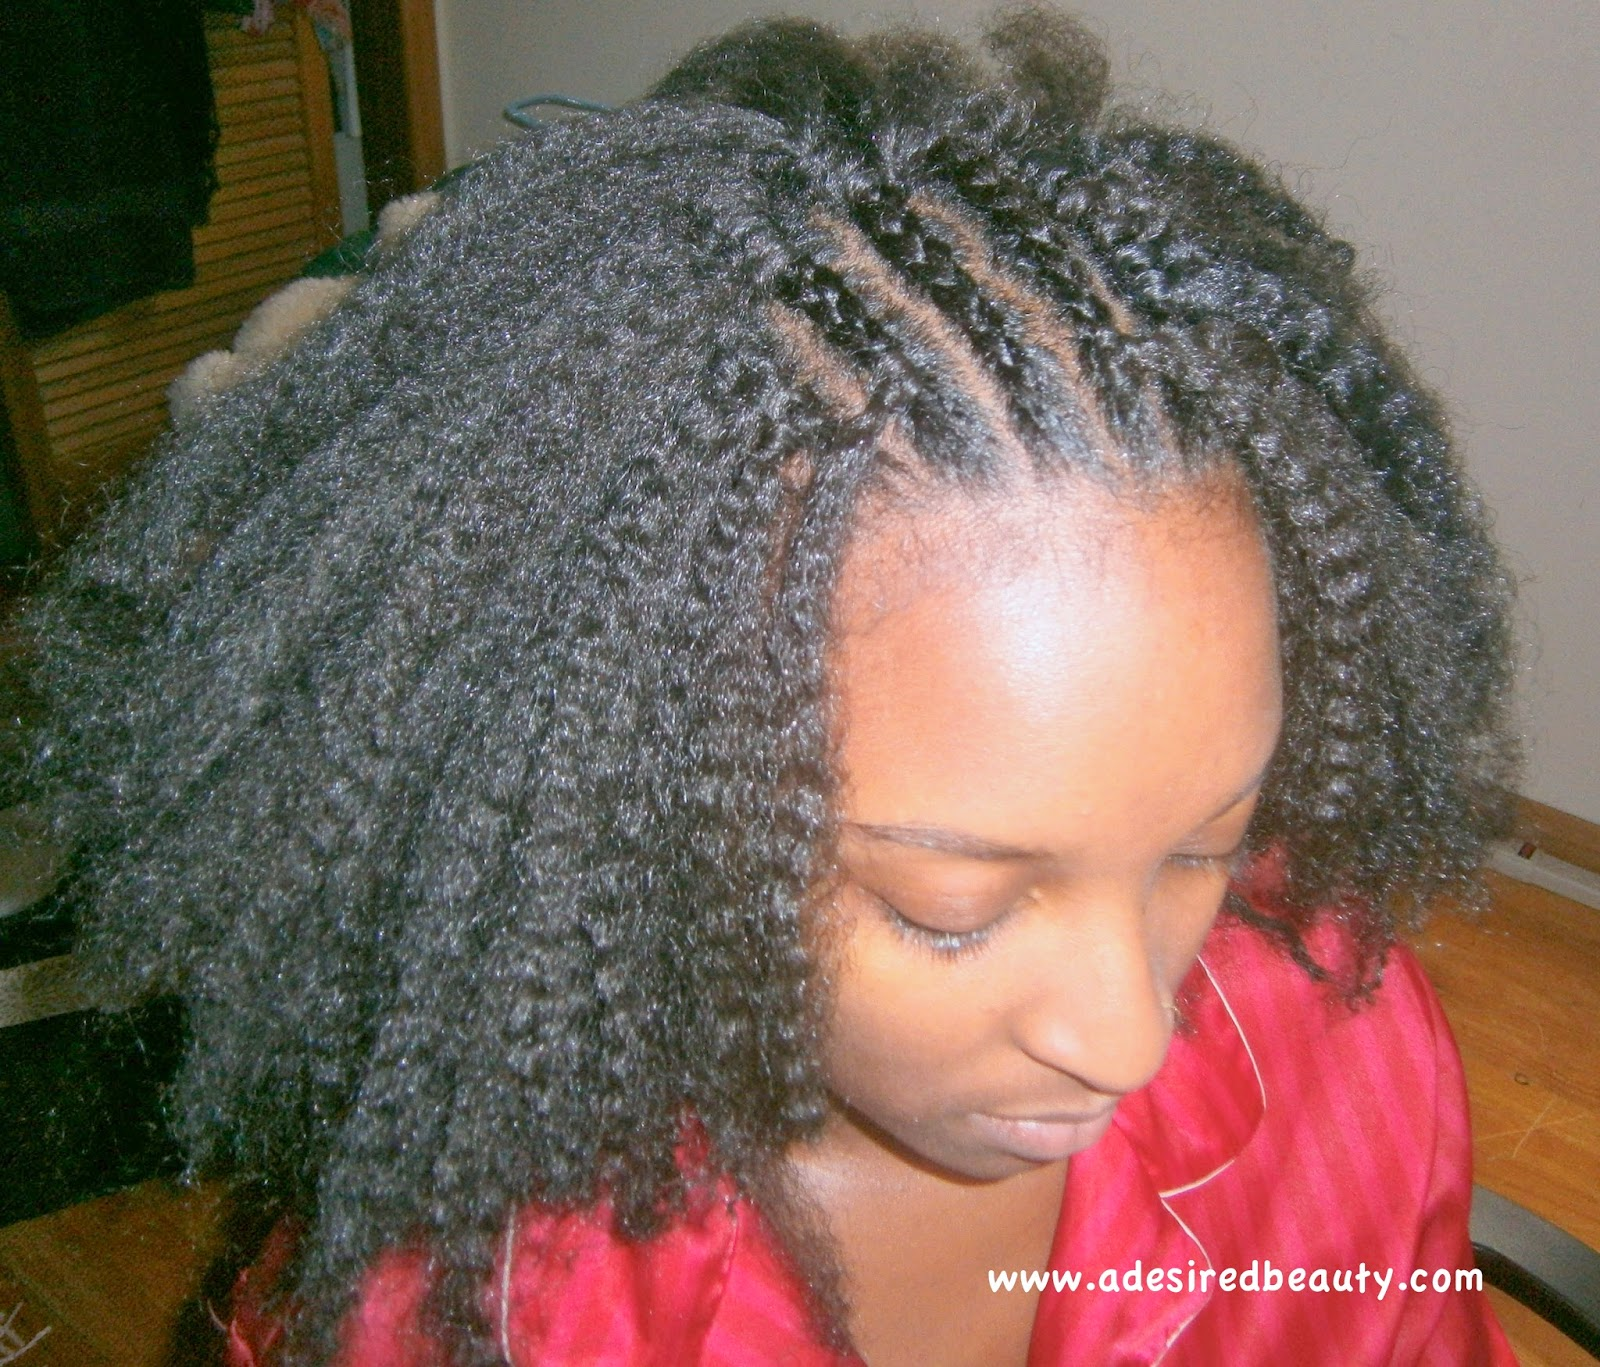 Crochet Hair Process : Installing My Sisters Crochet Braids {Inspiring My Own} A Desired ...